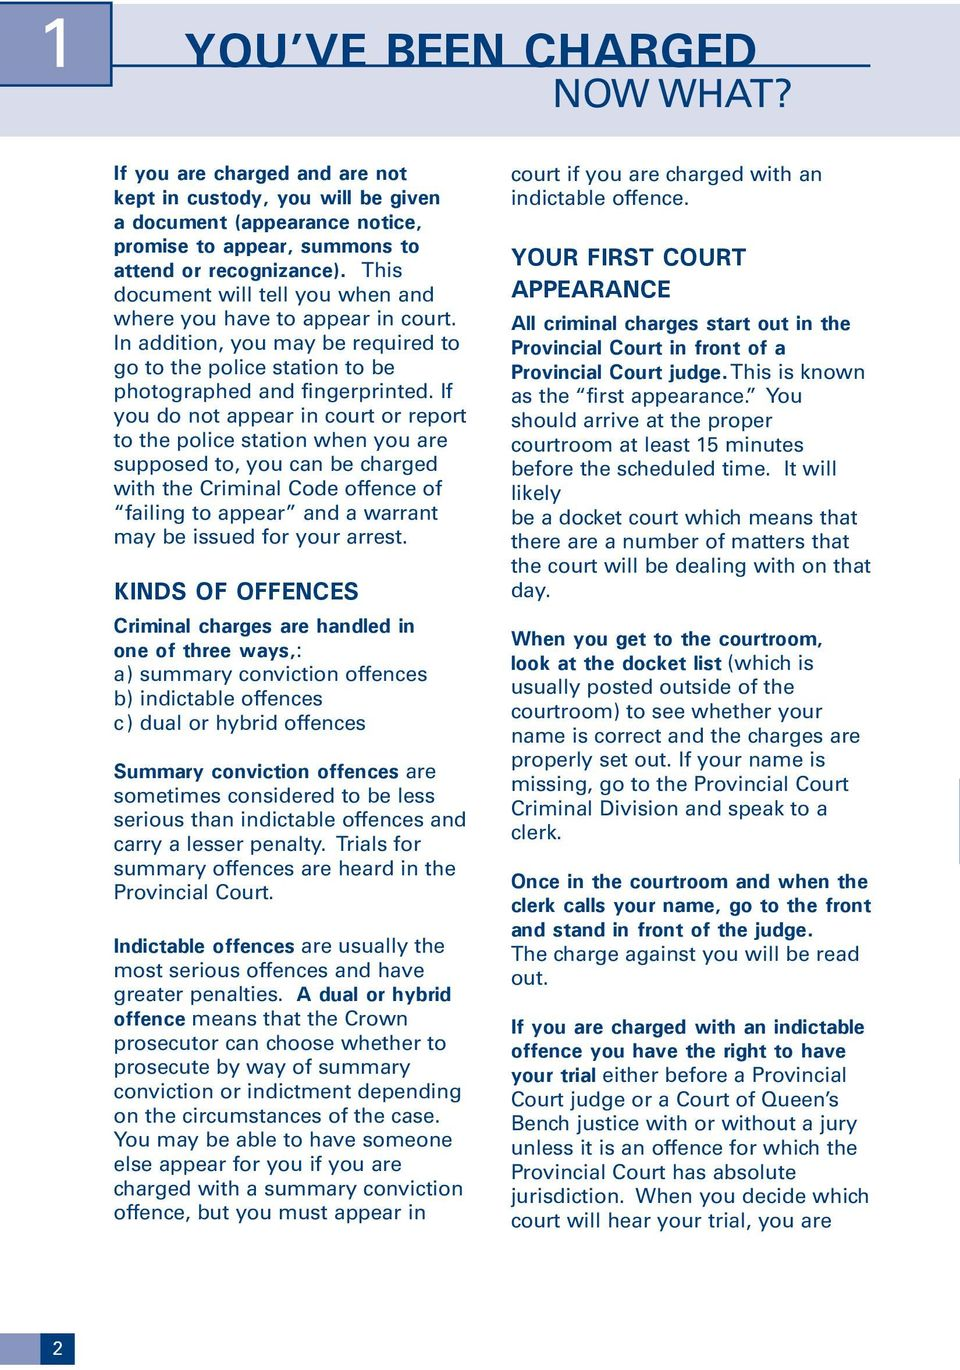 If you do not appear in court or report to the police station when you are supposed to, you can be charged with the Criminal Code offence of failing to appear and a warrant may be issued for your